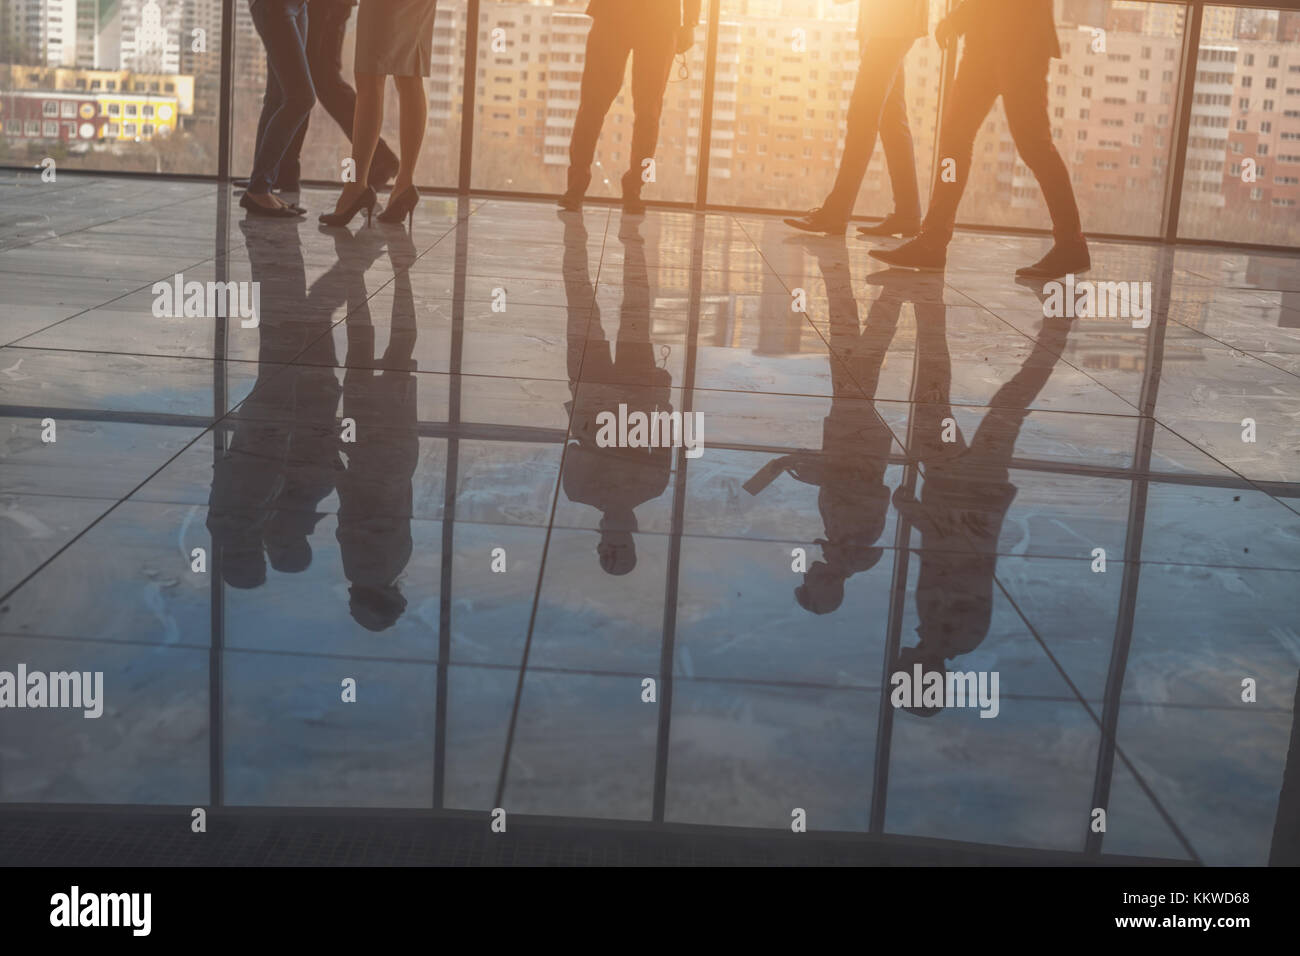 Silhouettes of business people in conference room - Stock Image